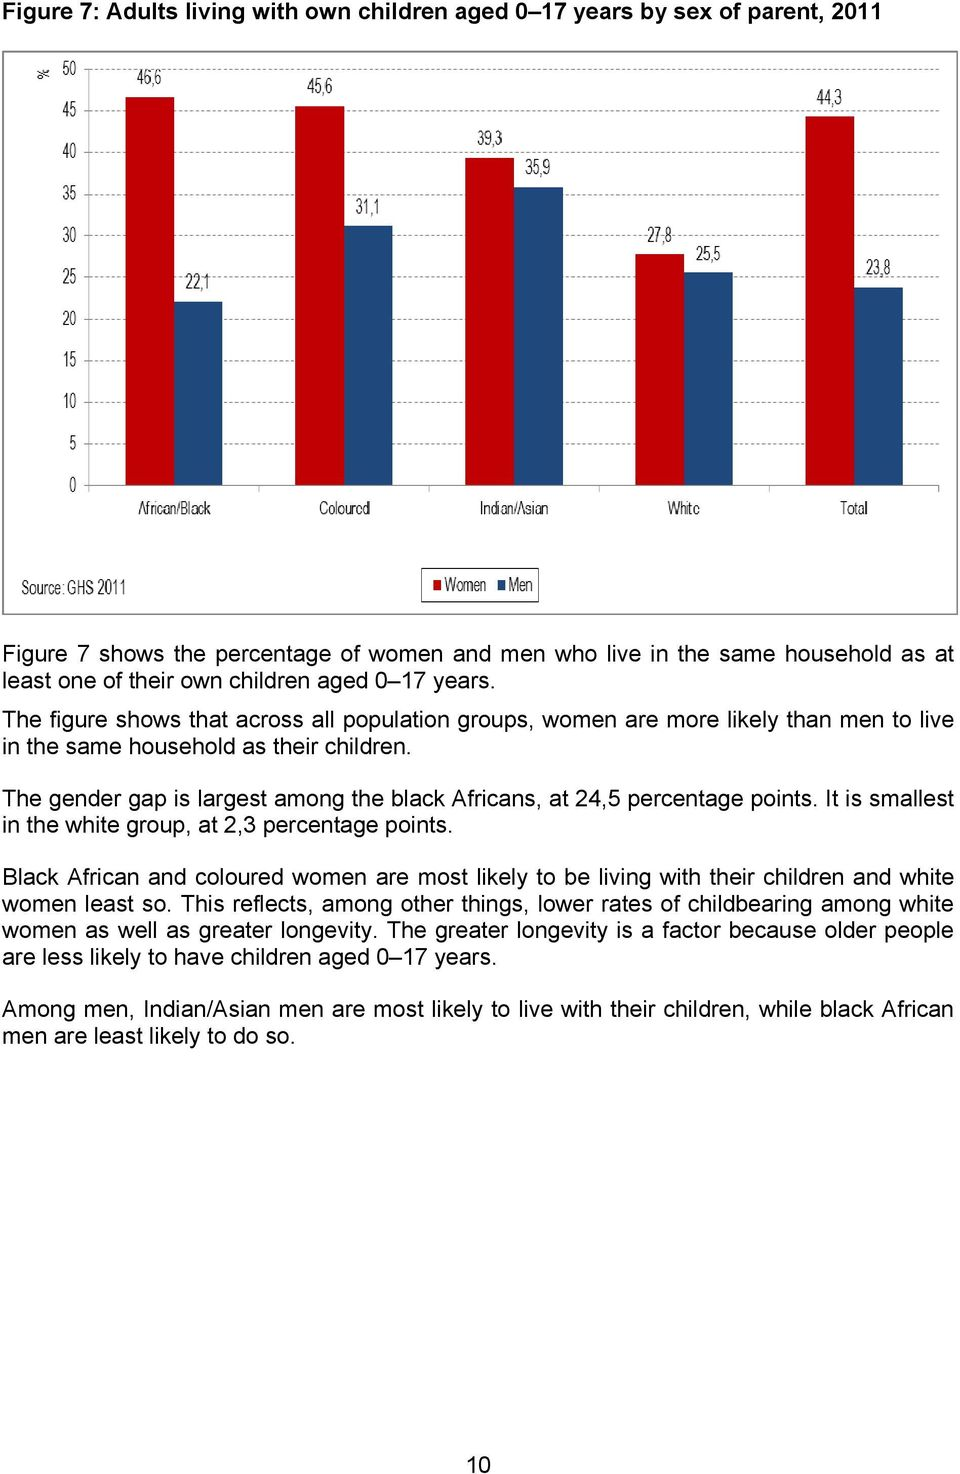 The gender gap is largest among the black Africans, at 24,5 percentage points. It is smallest in the white group, at 2,3 percentage points.